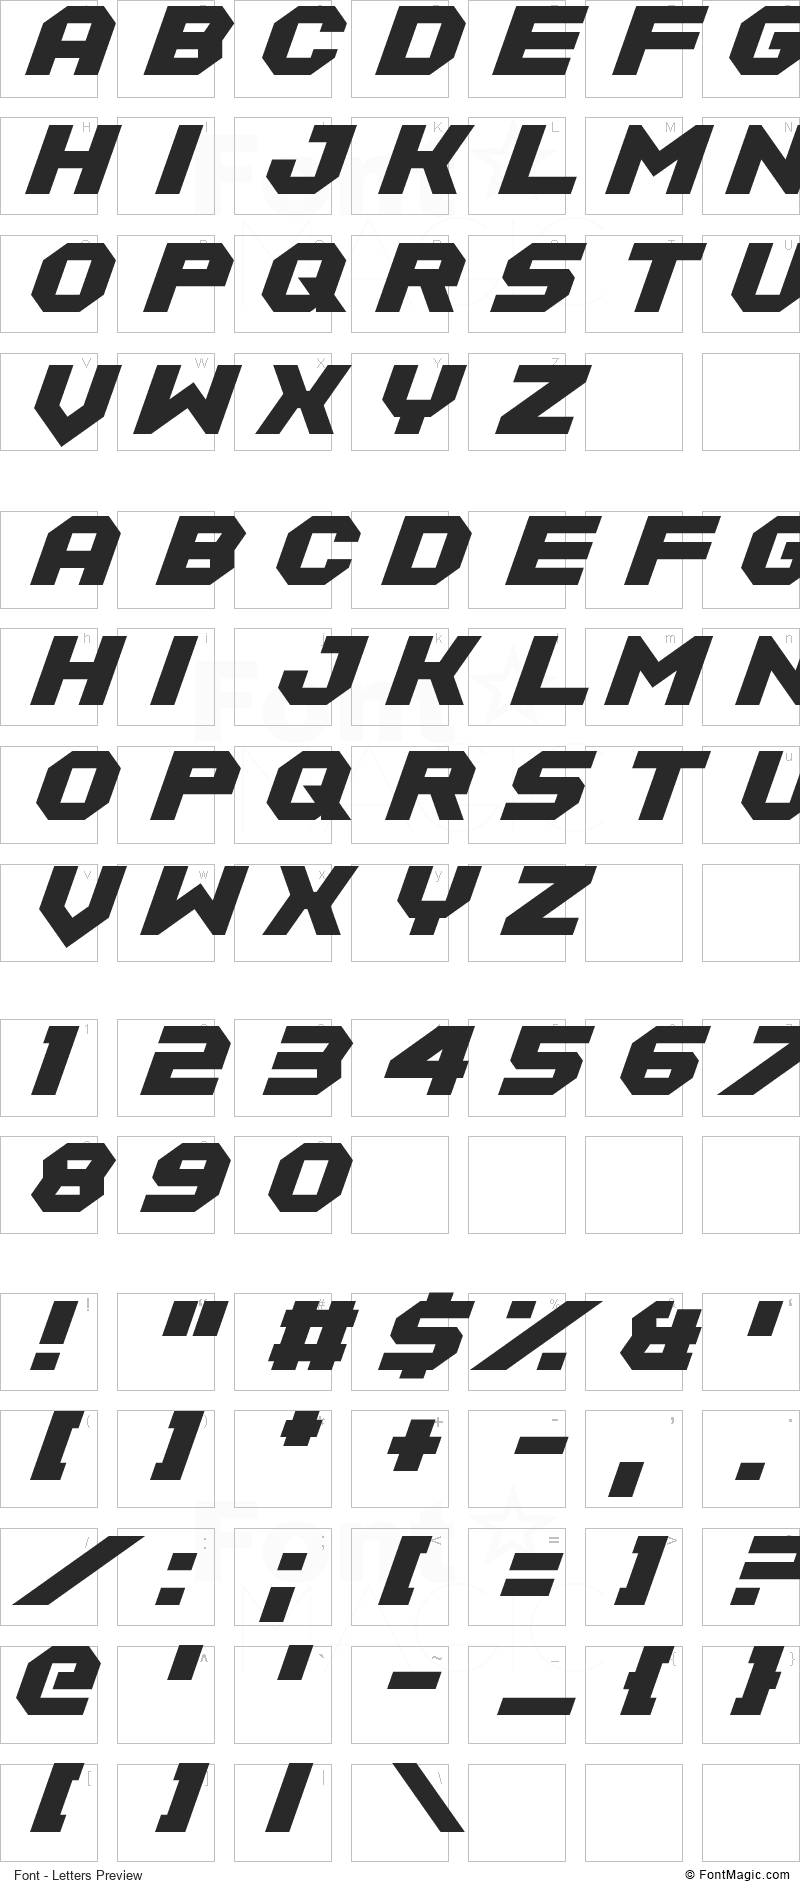 Equalize Font - All Latters Preview Chart